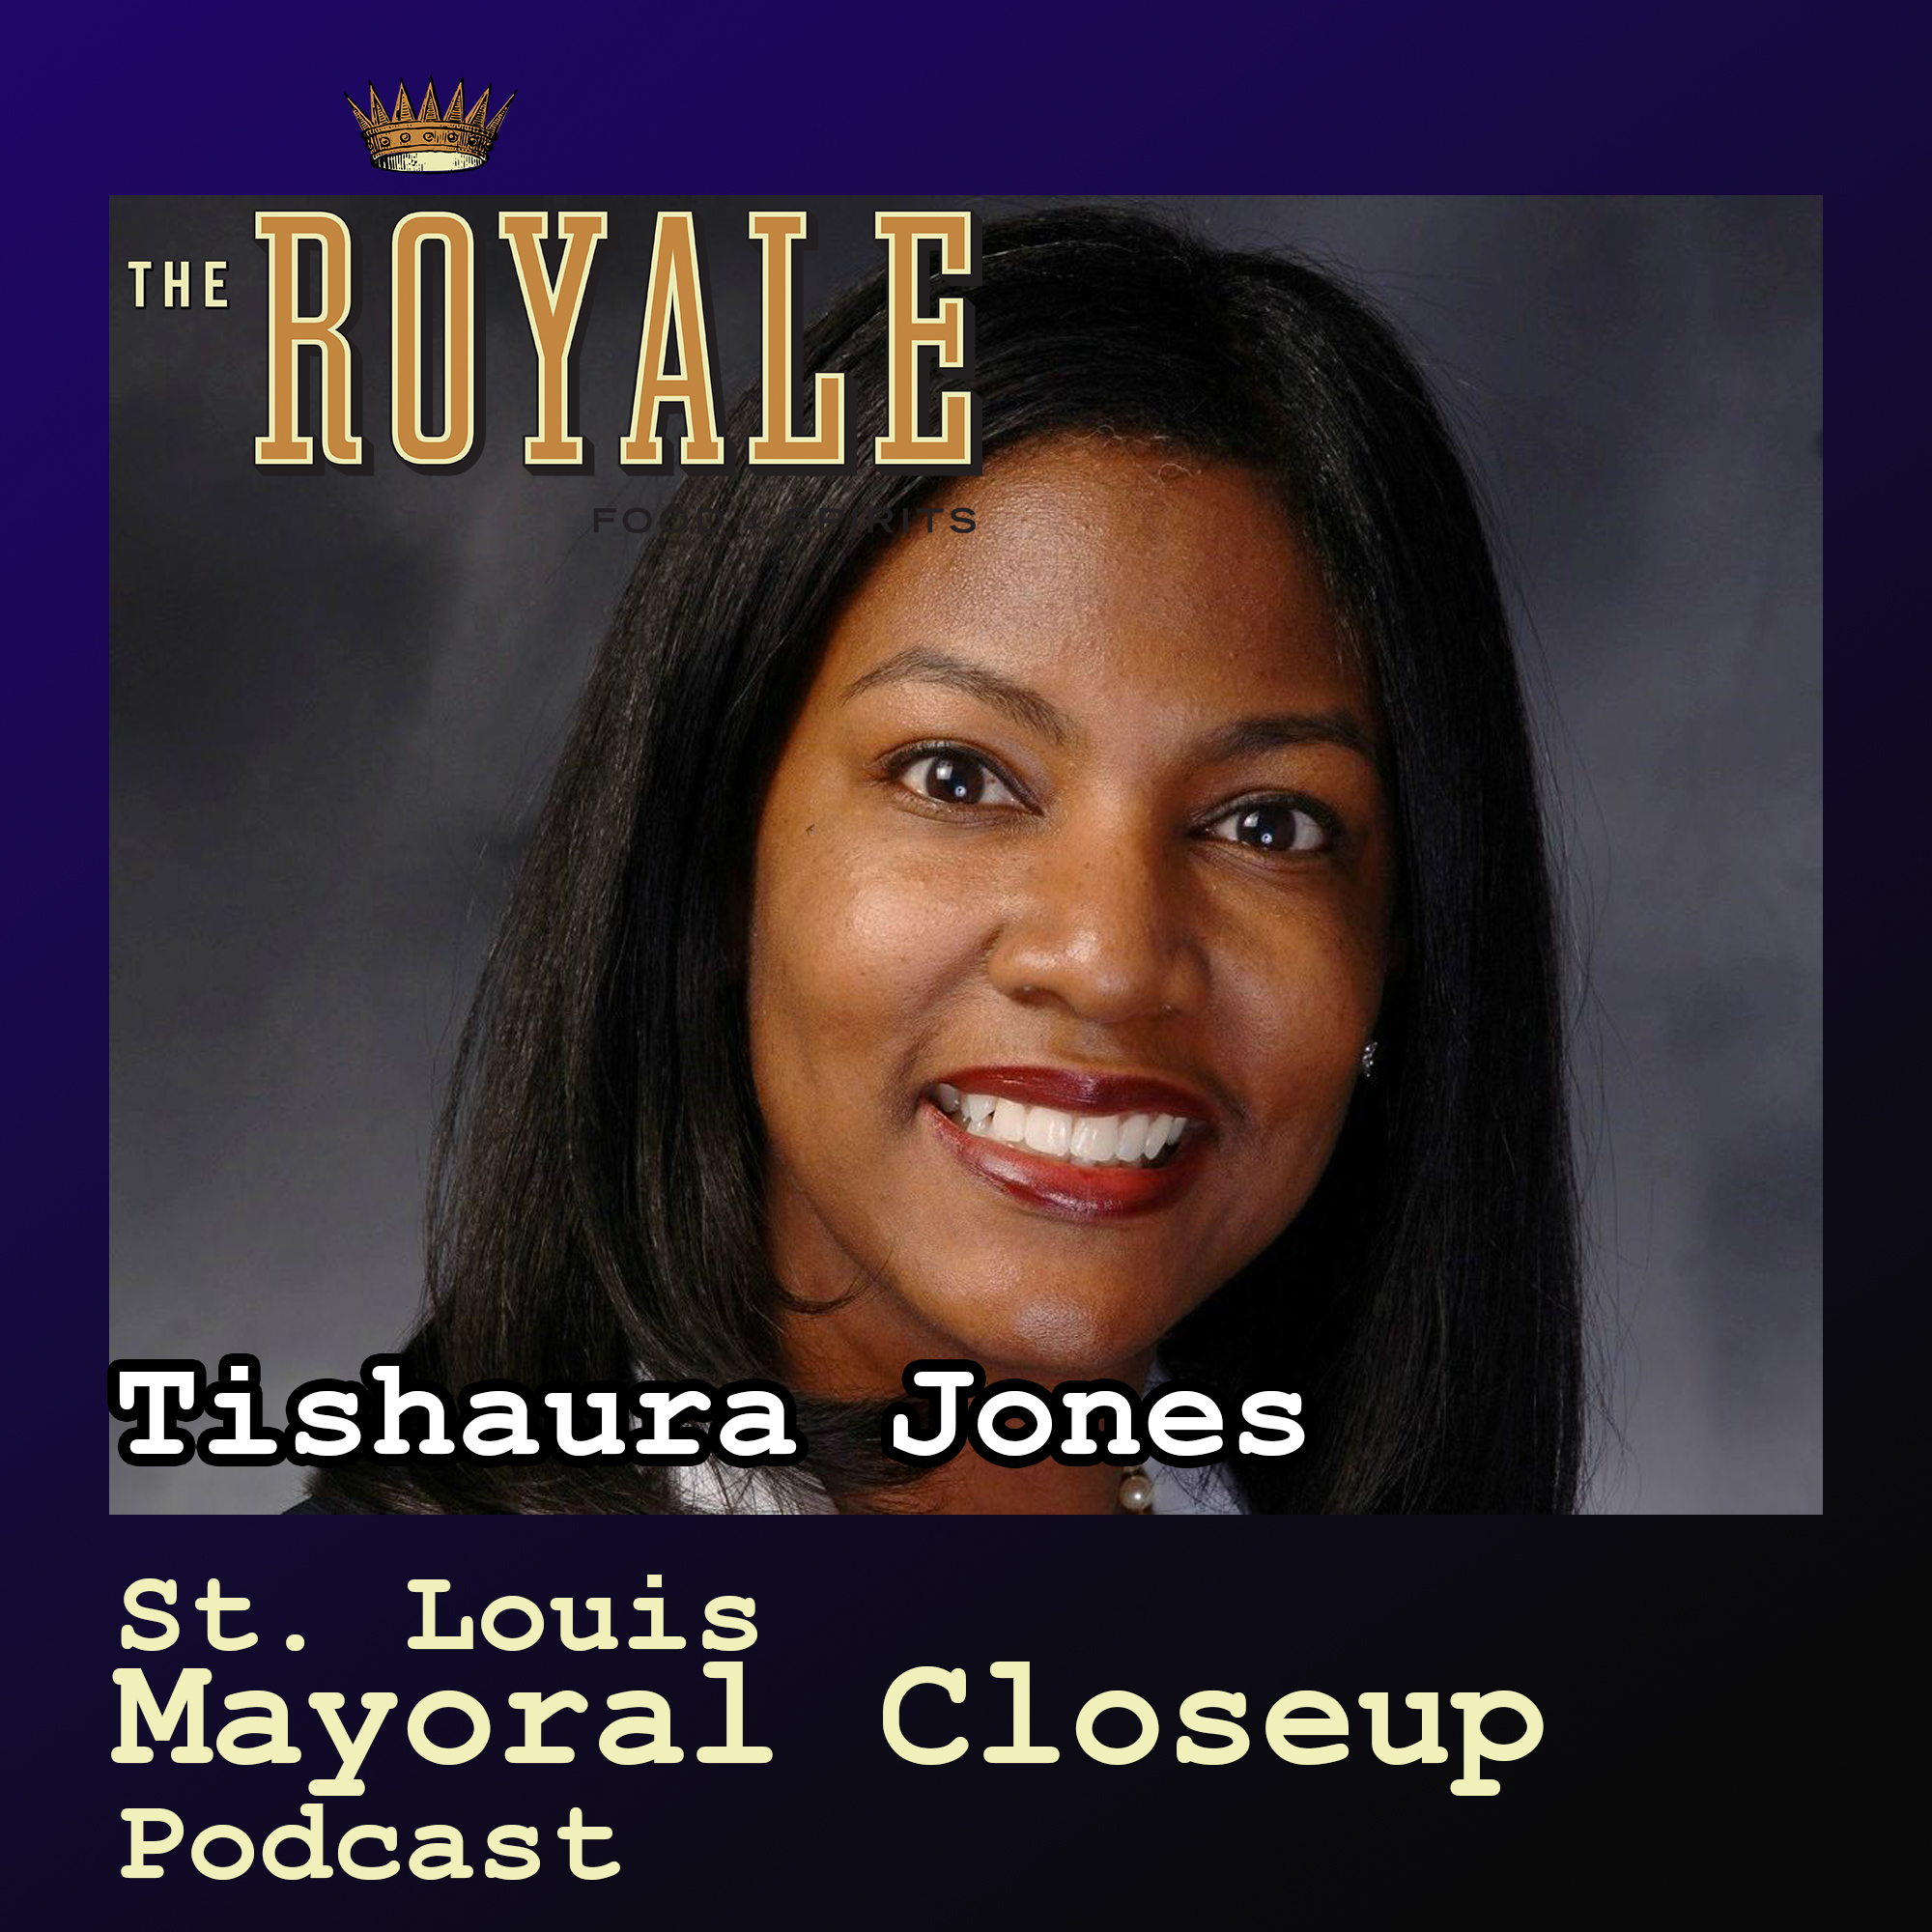 St. Louis Mayoral Closeup Podcast, Episode One: Tishaura Jones